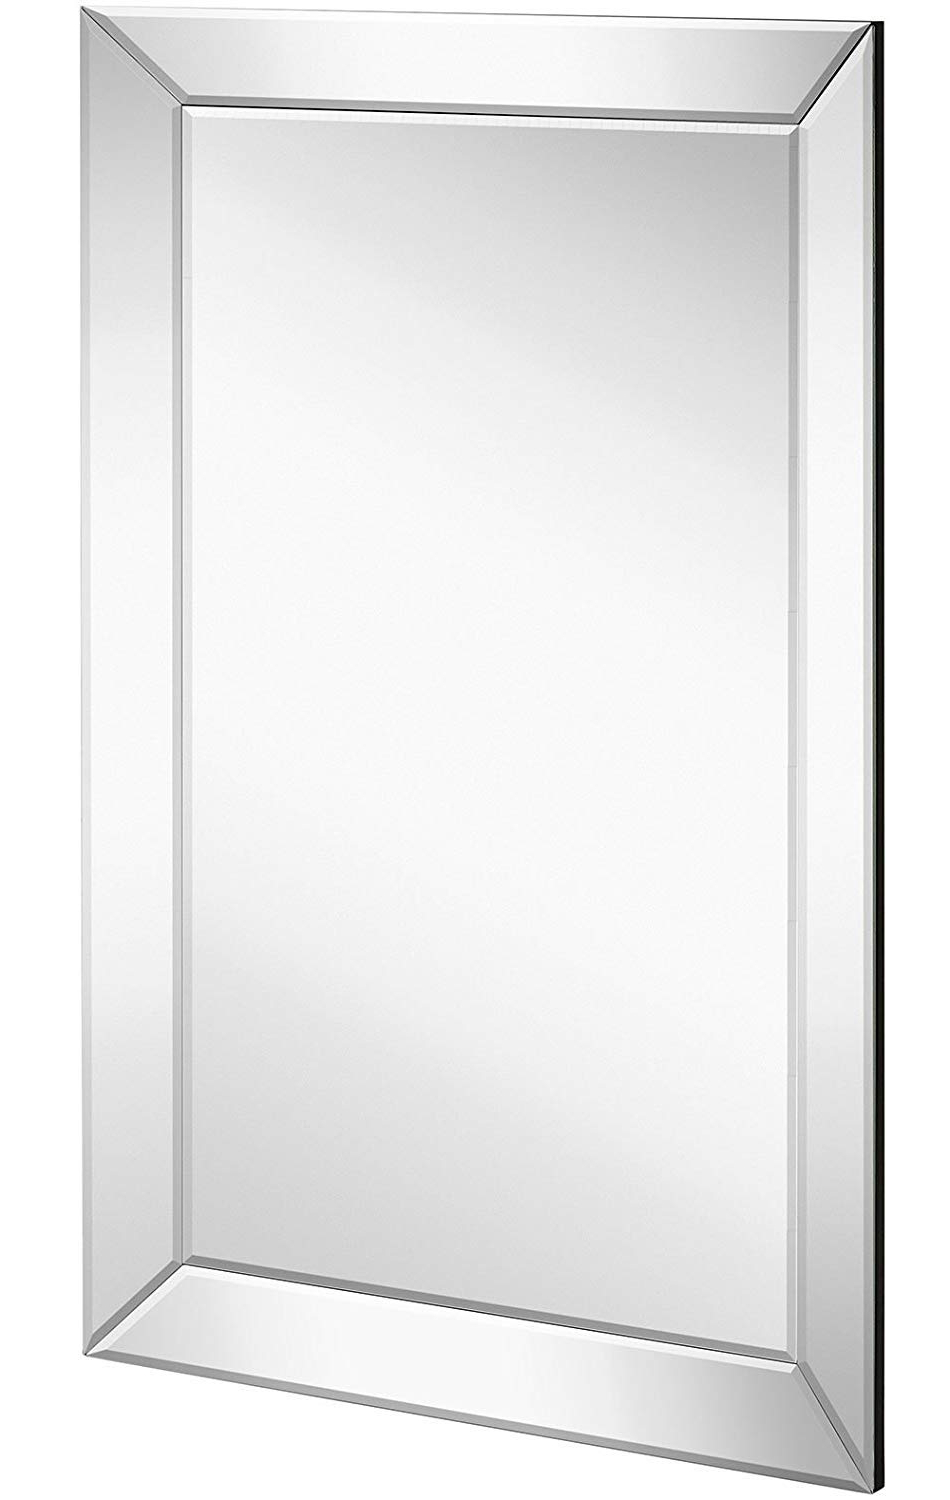 Luxury Mirrored Rectangle With Regard To Best And Newest Angled Wall Mirrors (View 13 of 20)